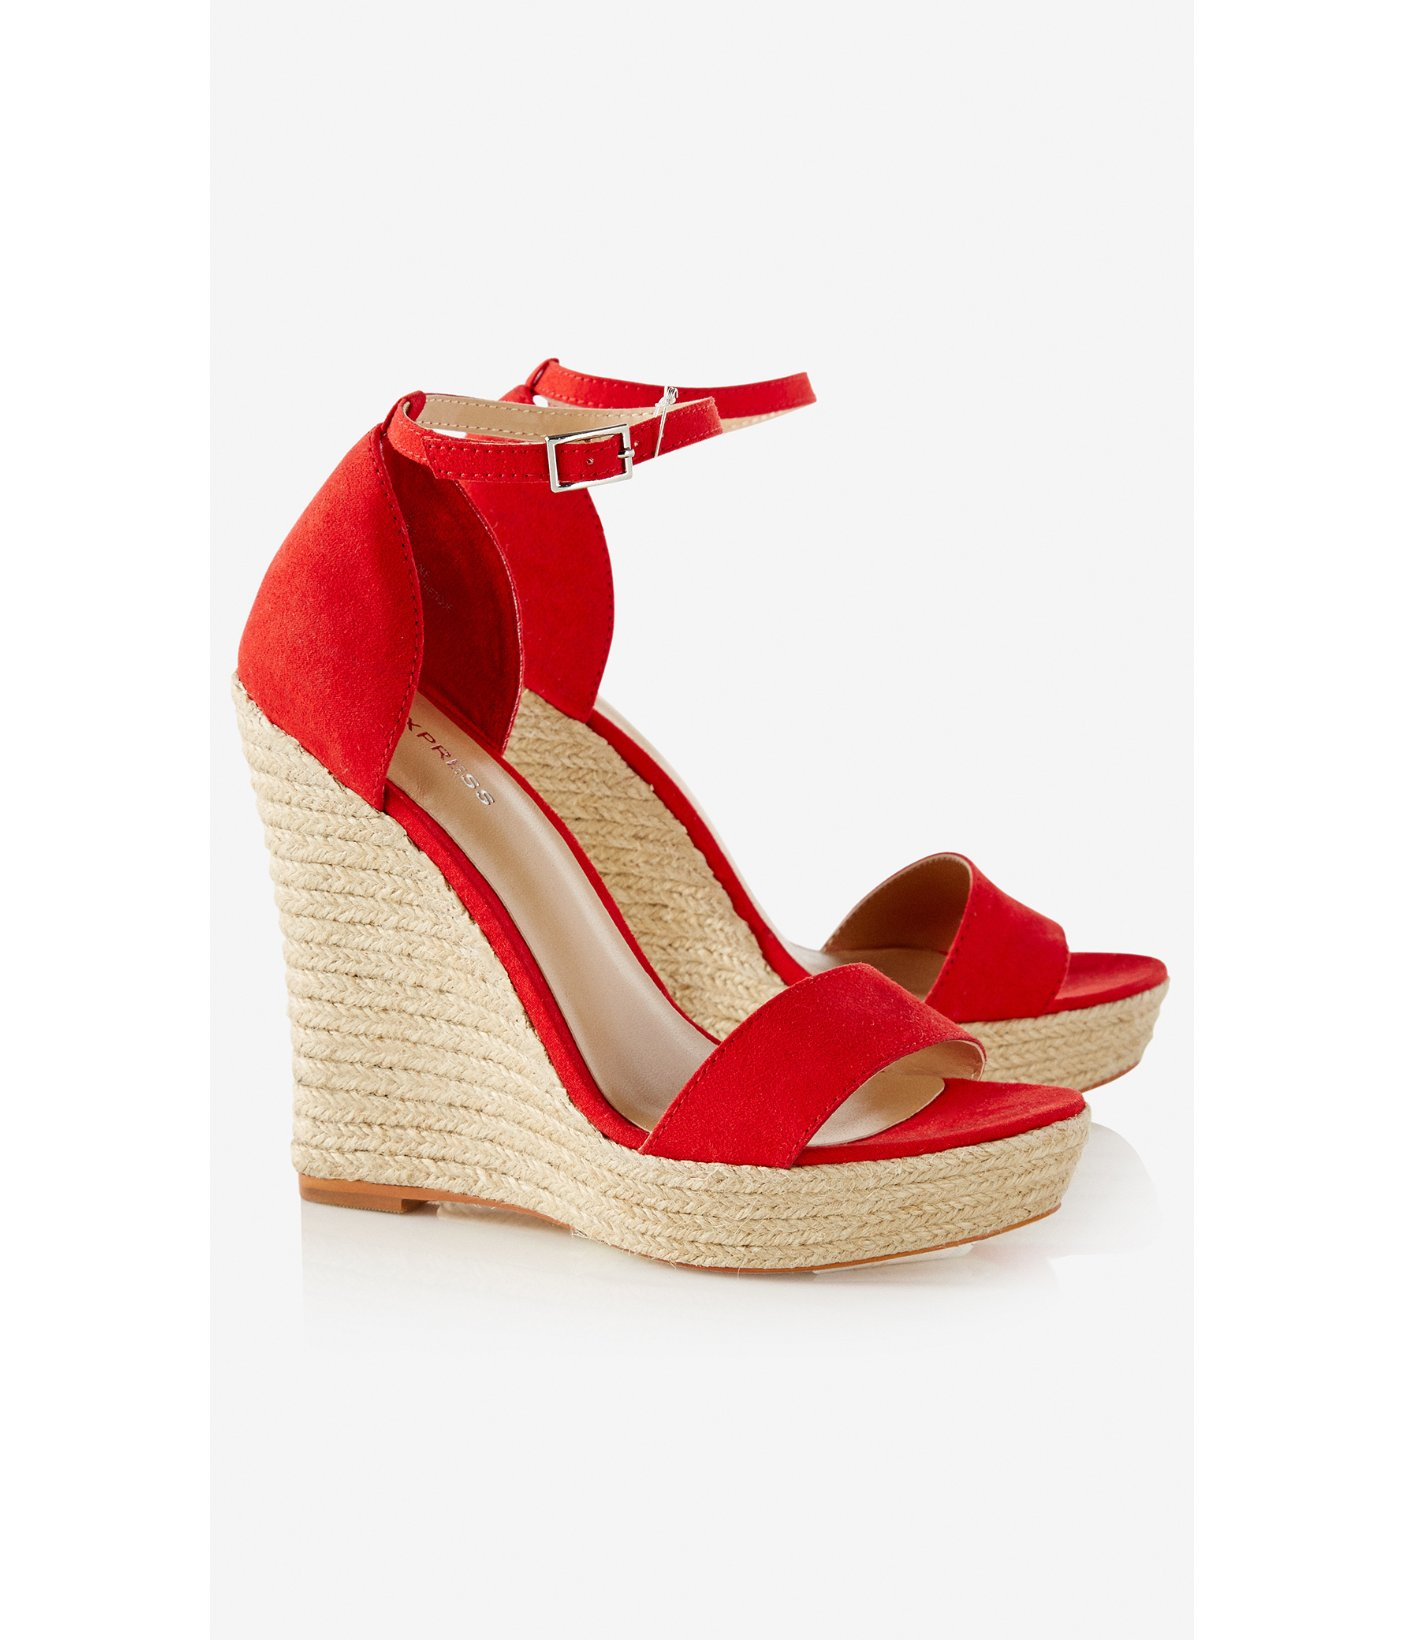 0cd1a48f1c1 Lyst - Express Espadrille Wedge Sandal in Red